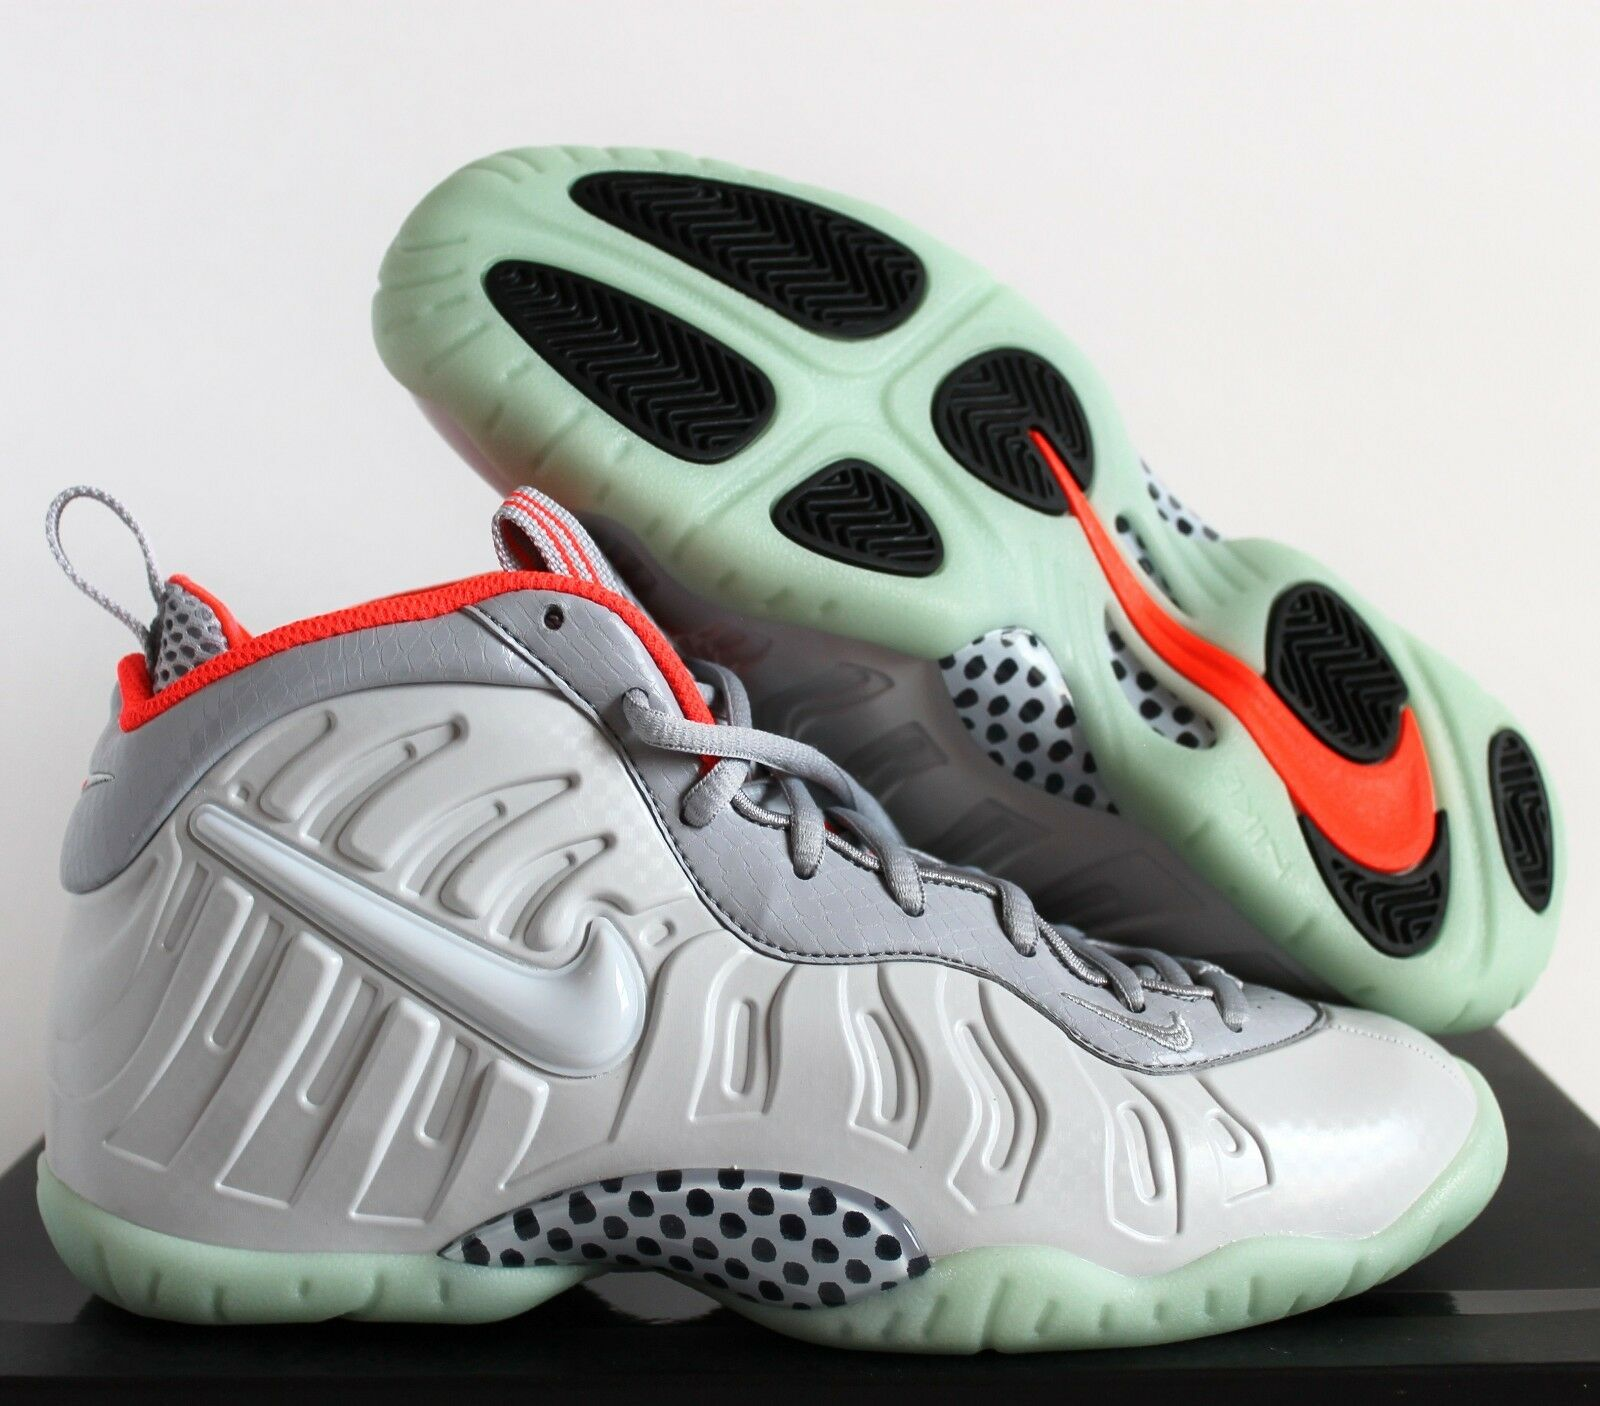 NIKE LITTLE POSITE PRO (GS) FOAMPOSITE PLATINUM SZ 5.5Y  WOMEN SZ 7 [644792-005]